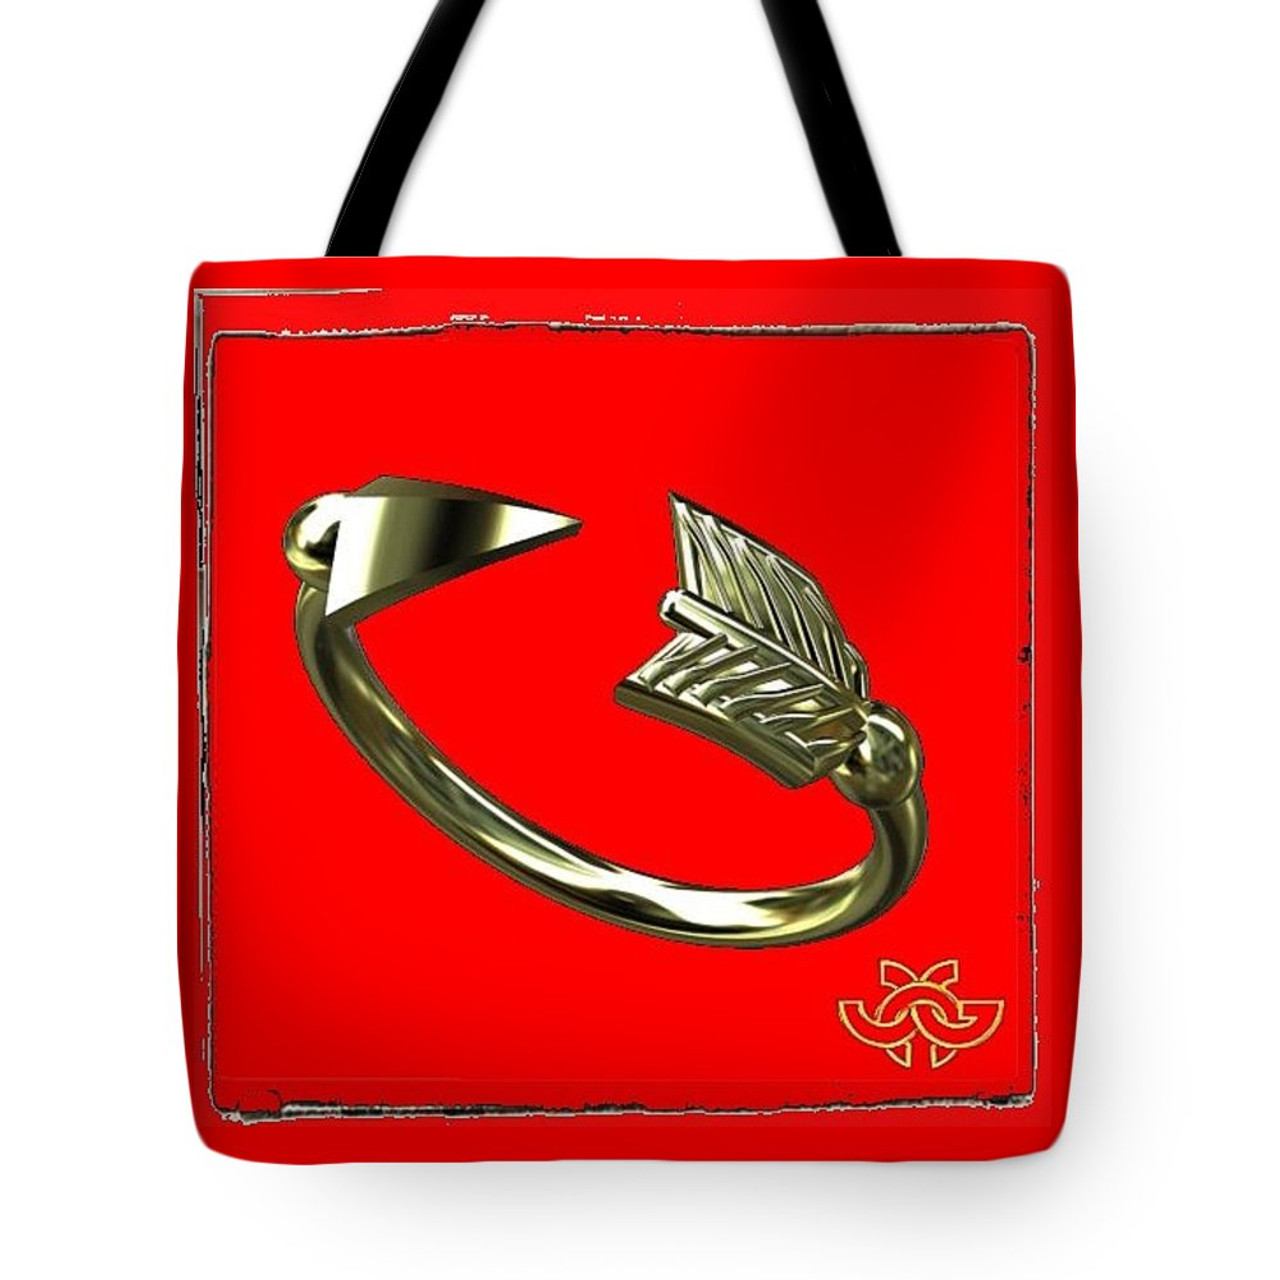 Arrow Rings. Art meets fashion in artful tote bags